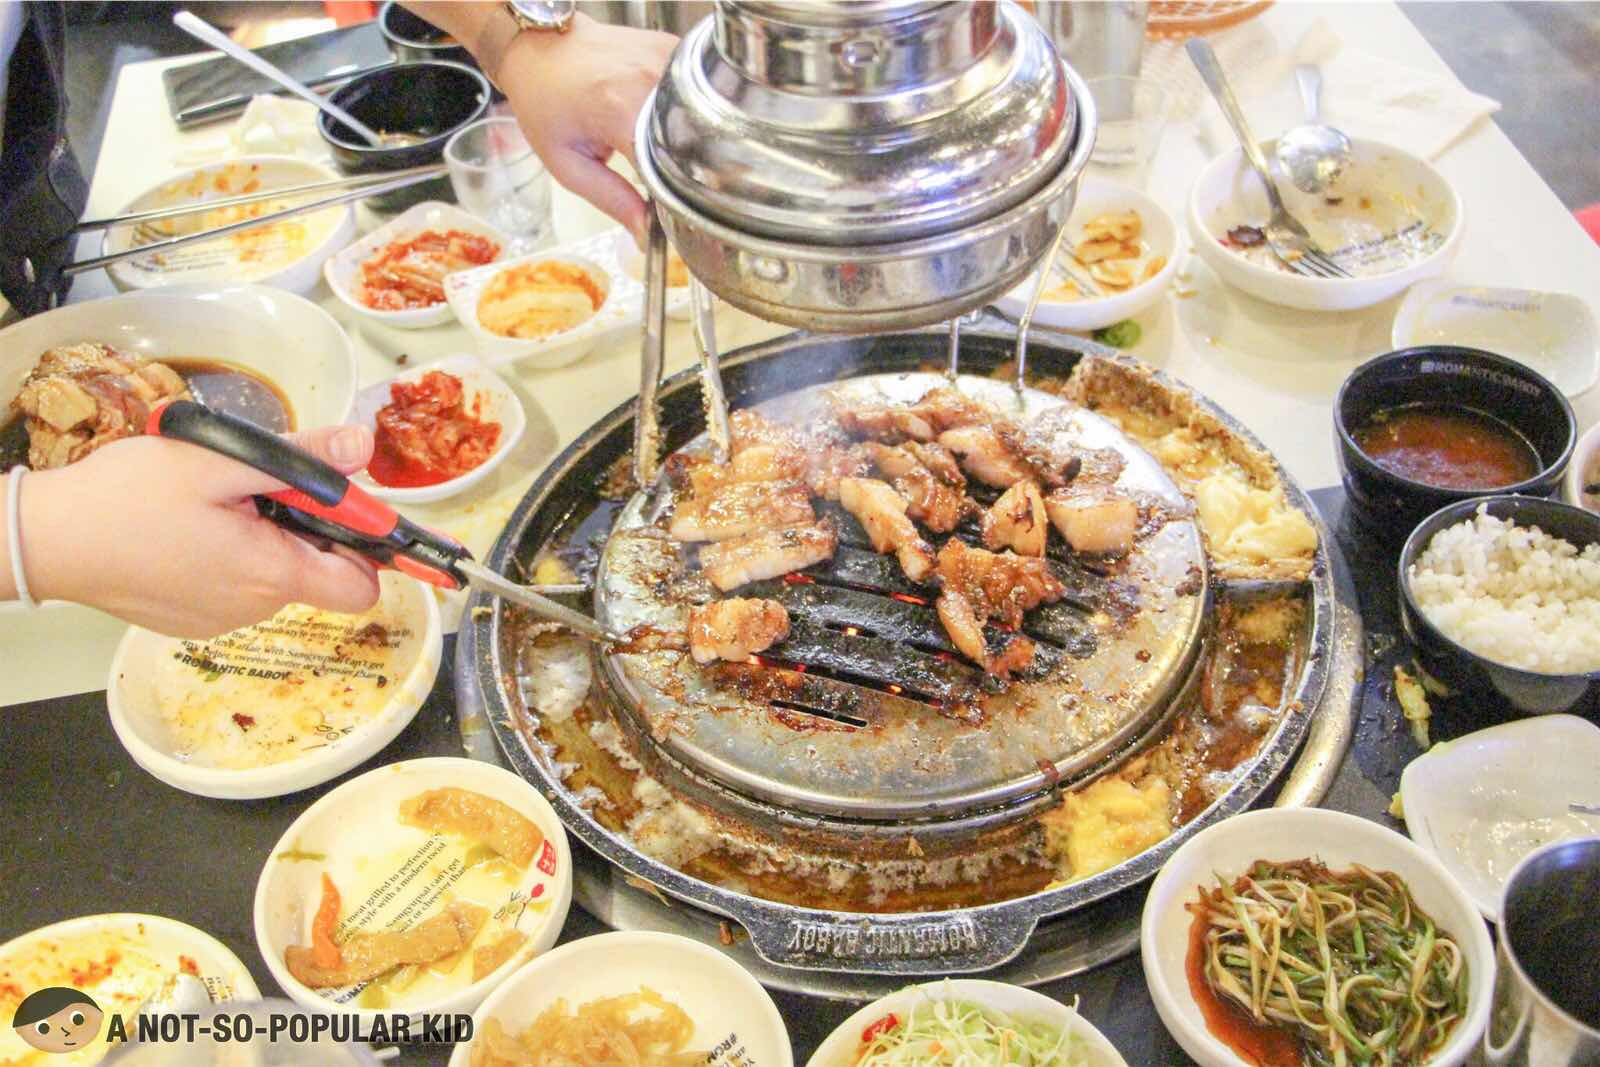 Sloppier the better in Romantic Baboy's Unlimited BBQ